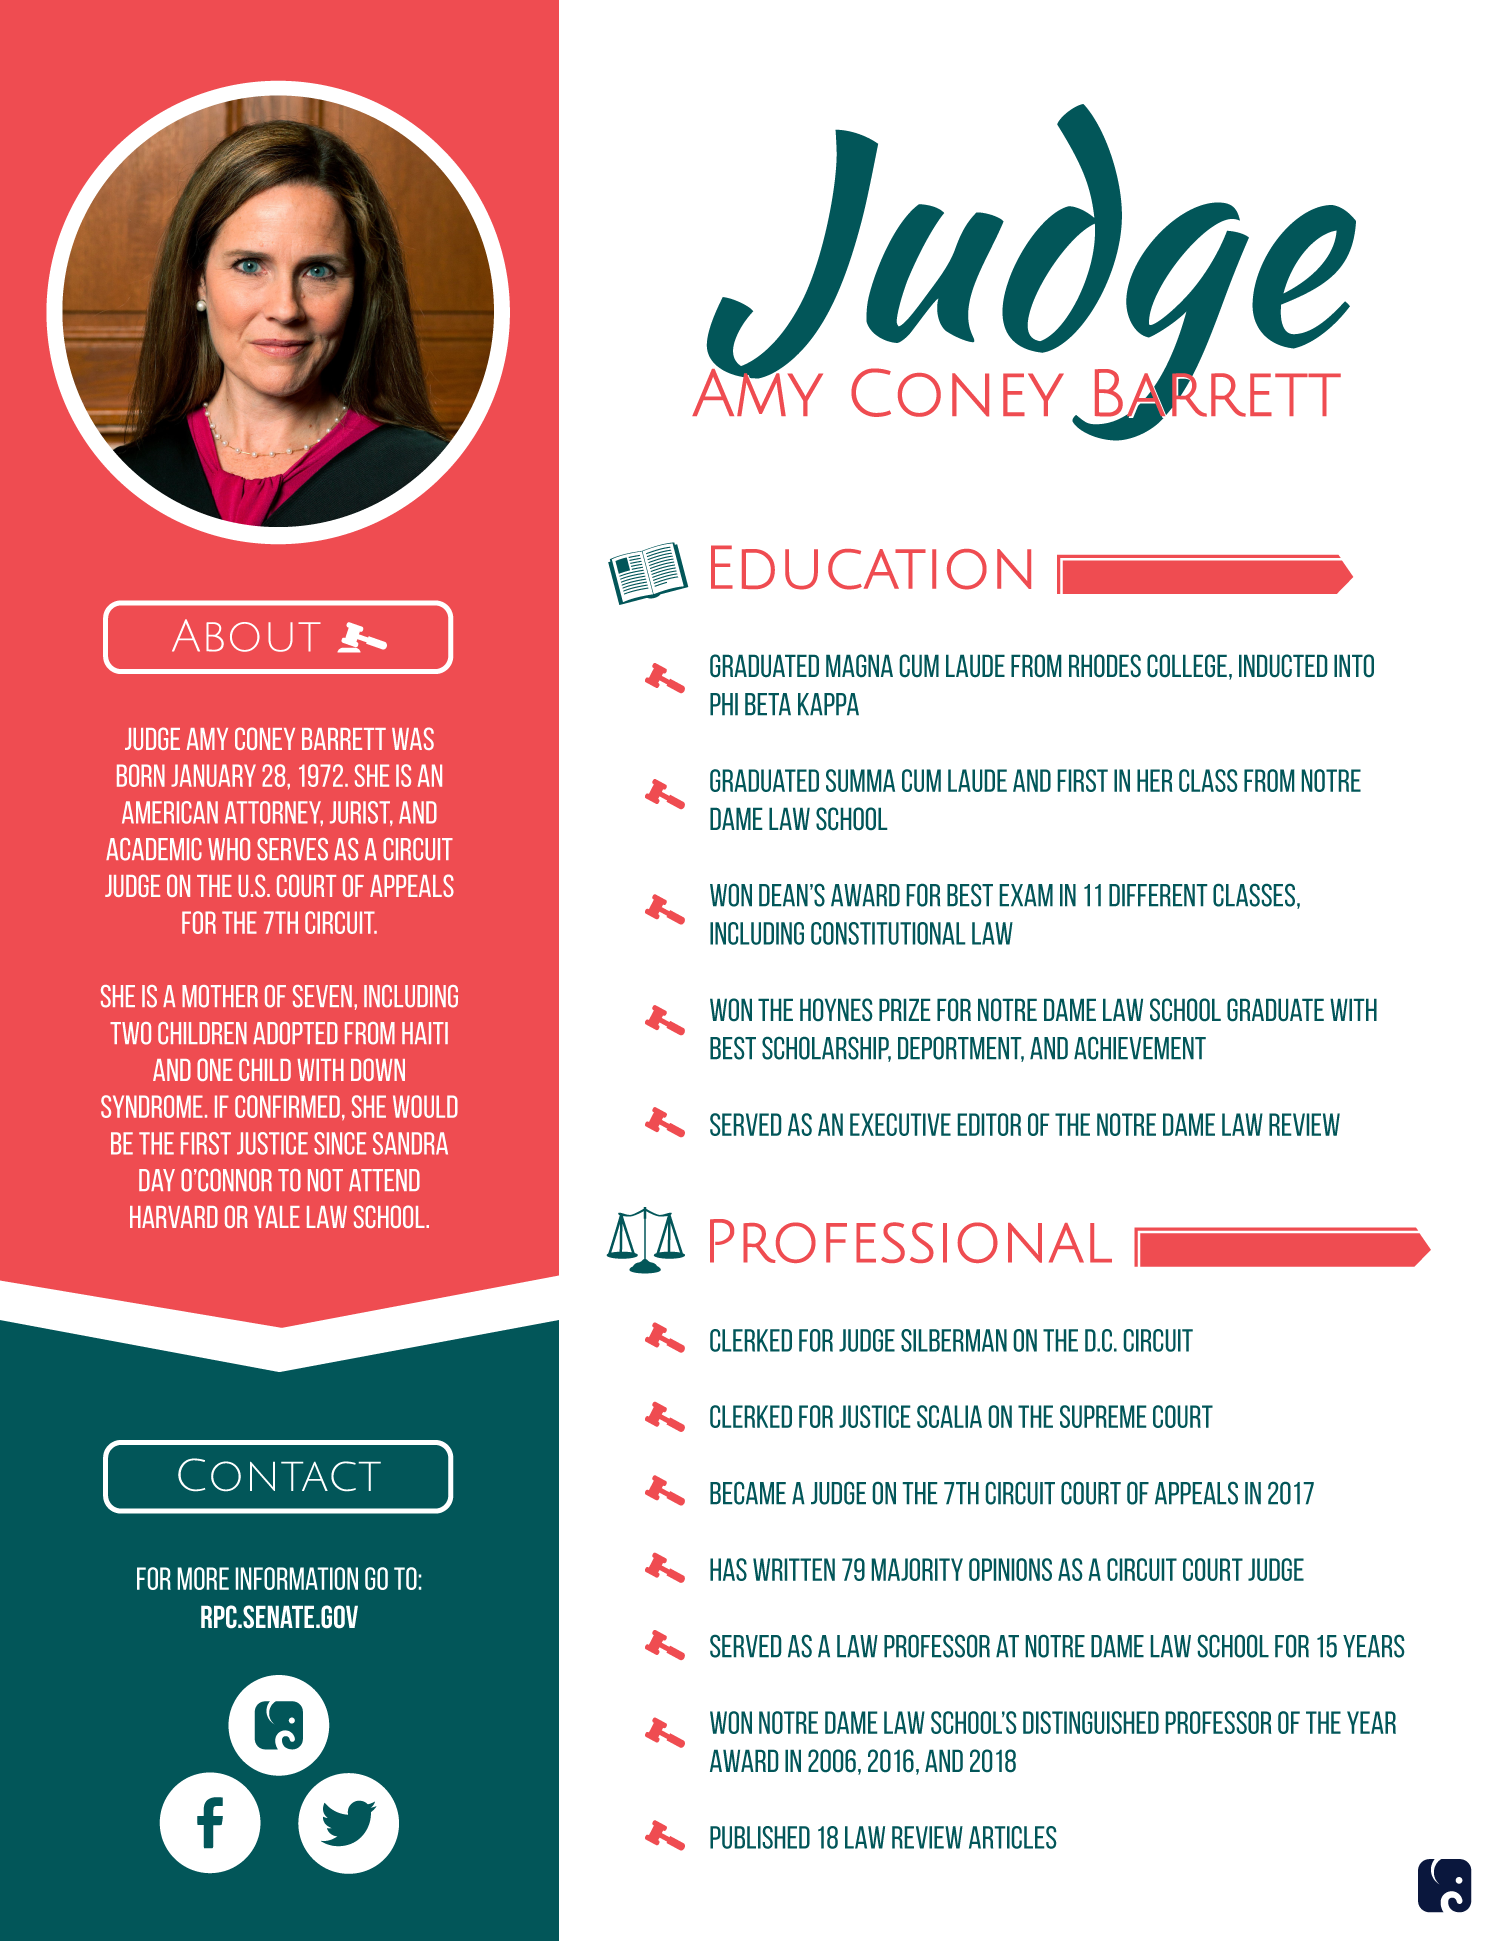 Resume for Judge Amy Coney Barrett